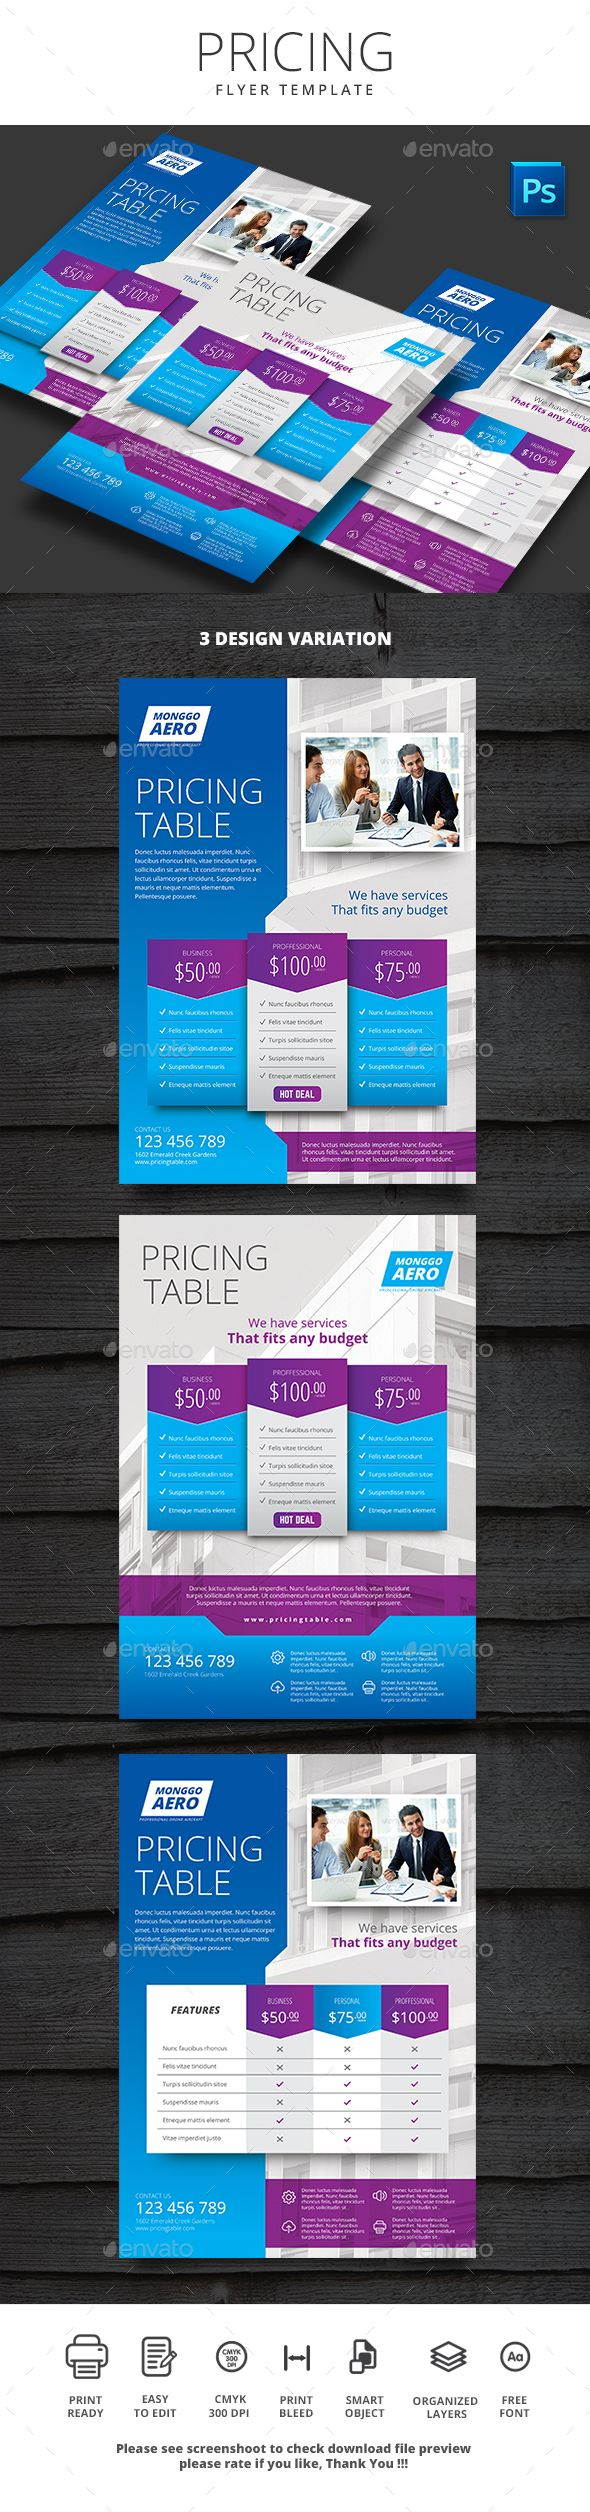 flyer design pricing